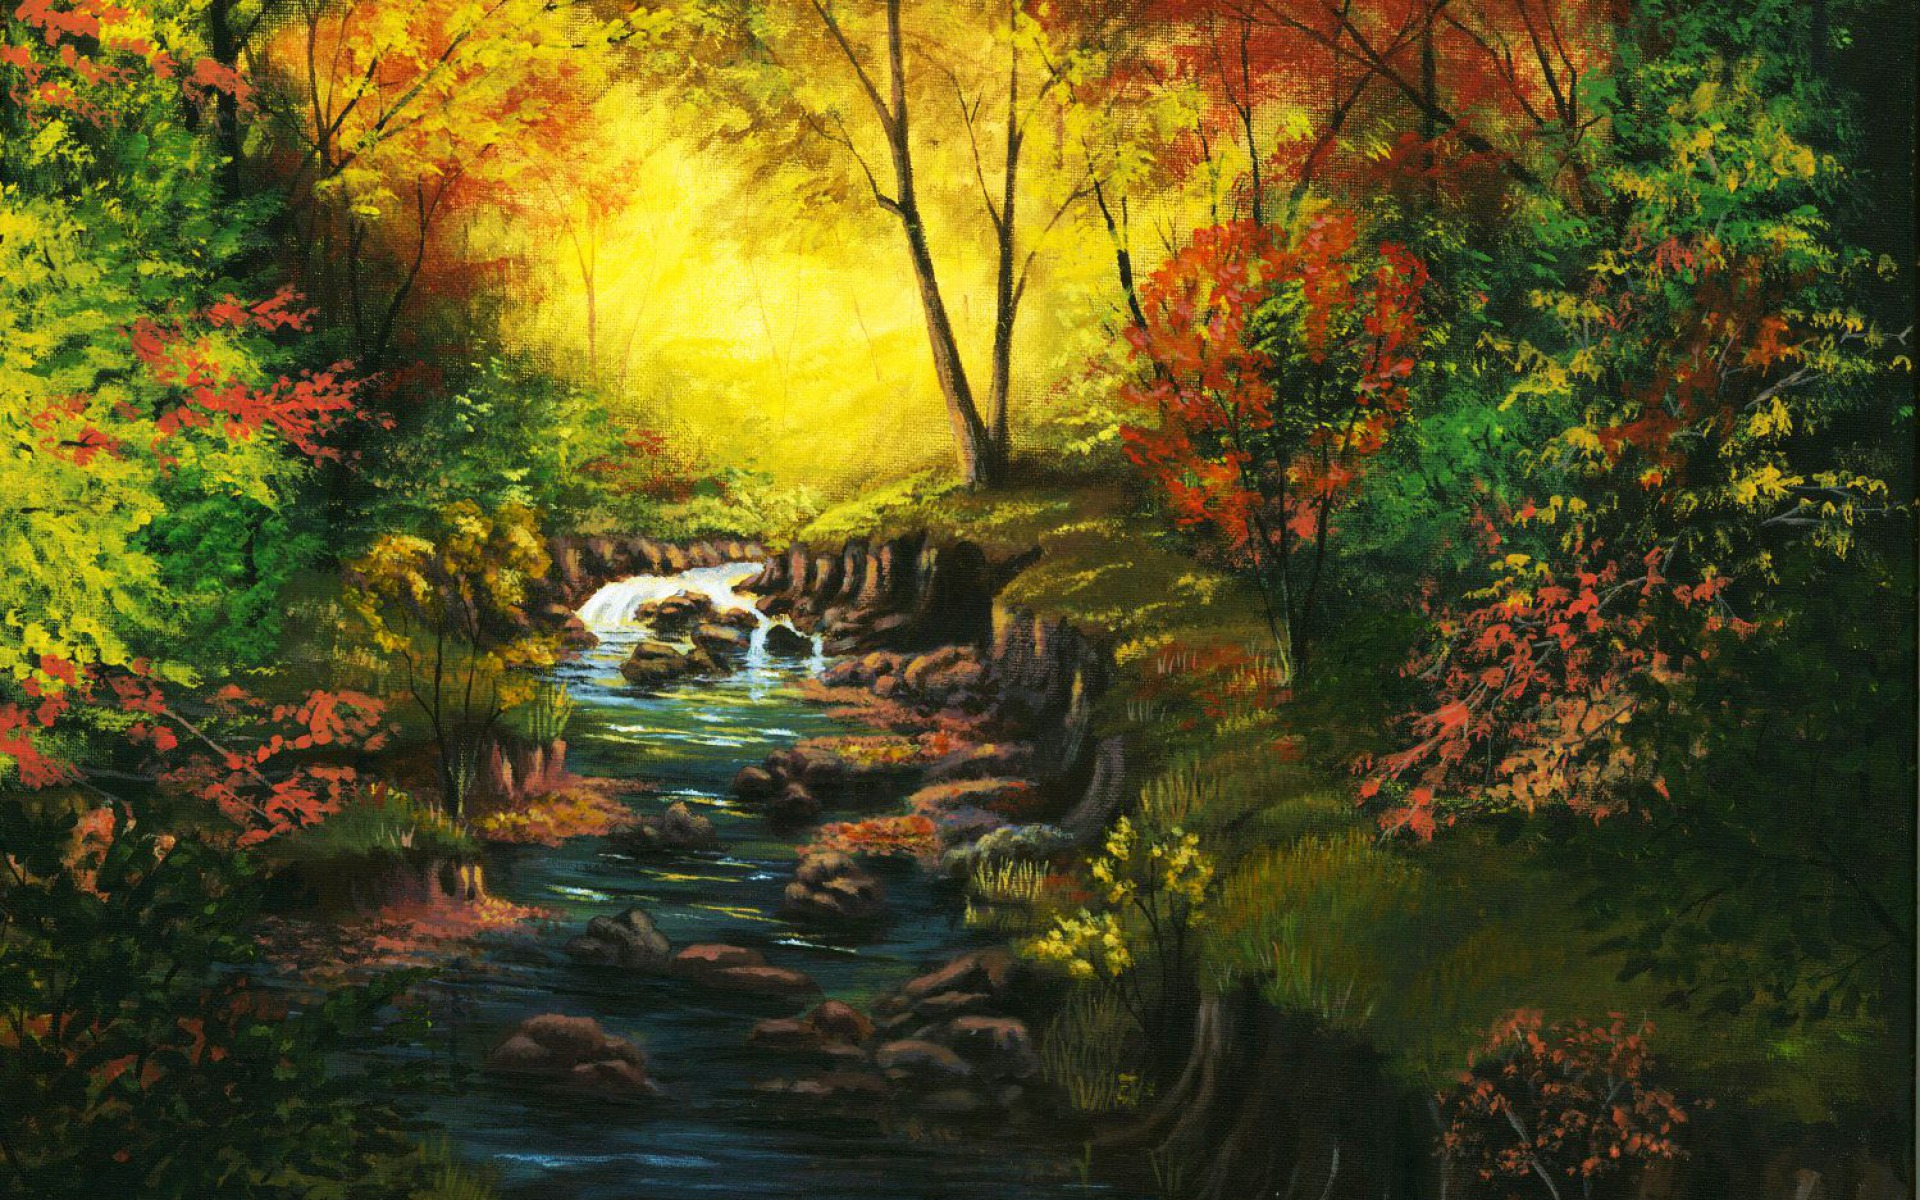 Animated Wallpaper For Tablet Amazing Autumn Forest Amp Creek Wallpapers Amazing Autumn